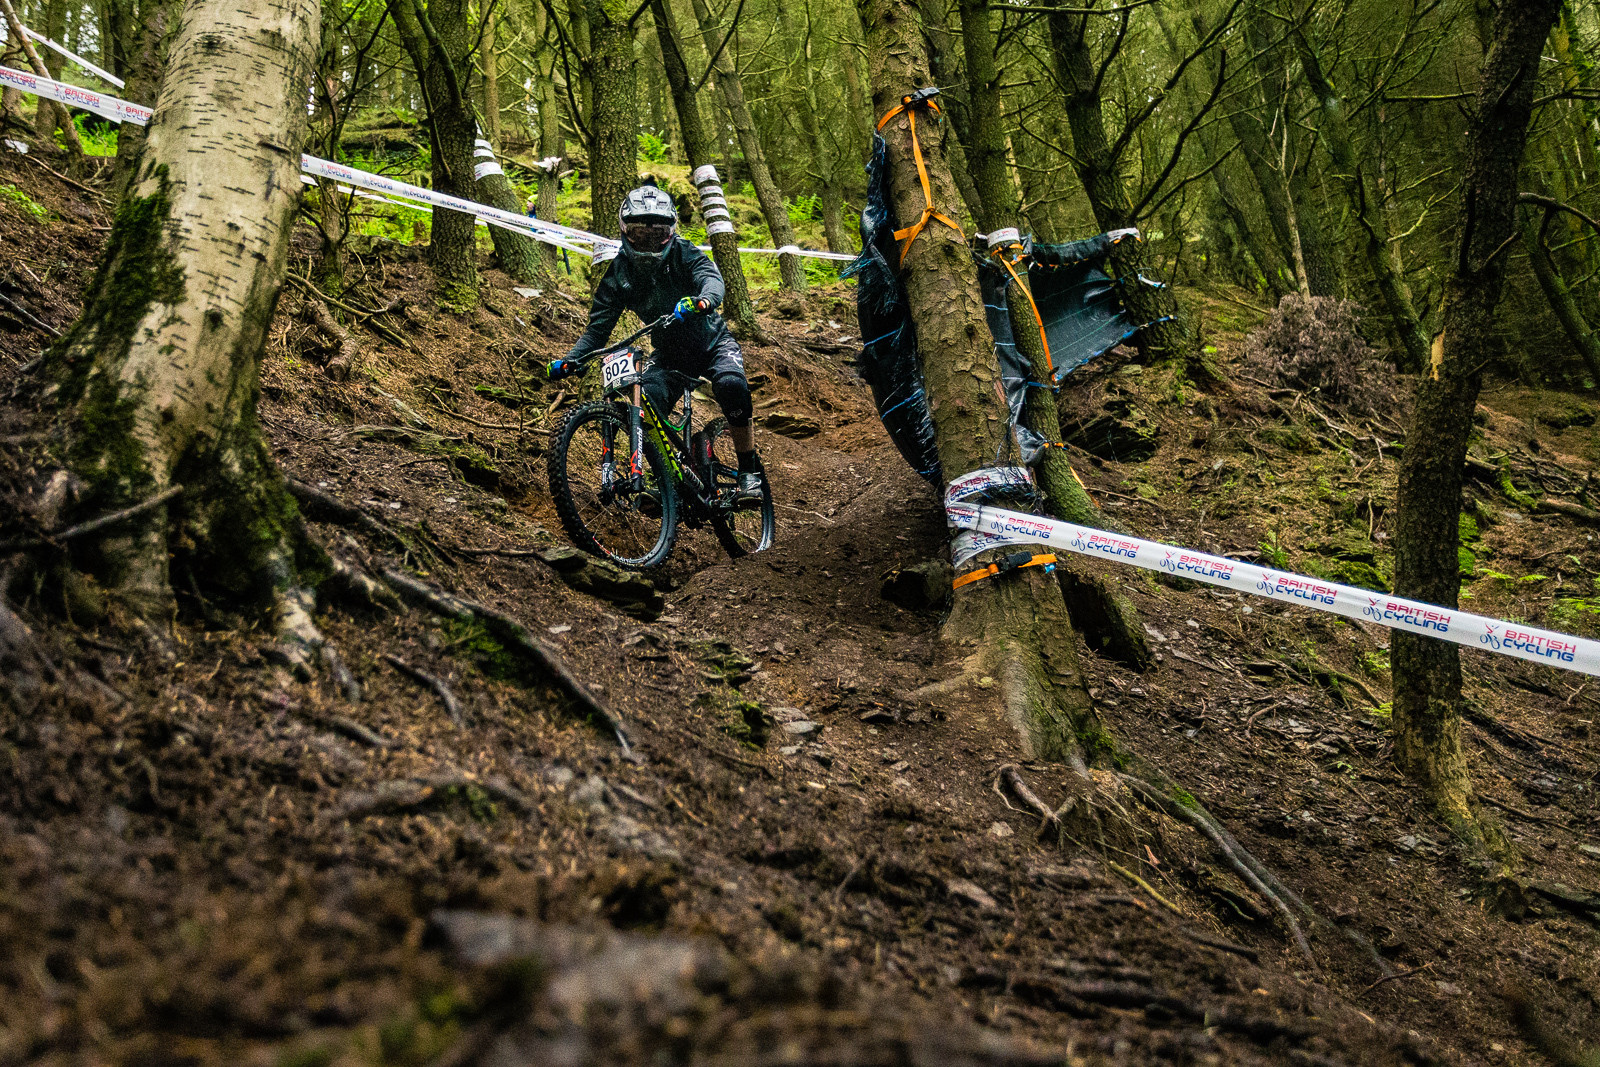 Kaos Seagrave, British Downhill Series Langollen - RACE REPORT - British Downhill Series Llangollen - Mountain Biking Pictures - Vital MTB